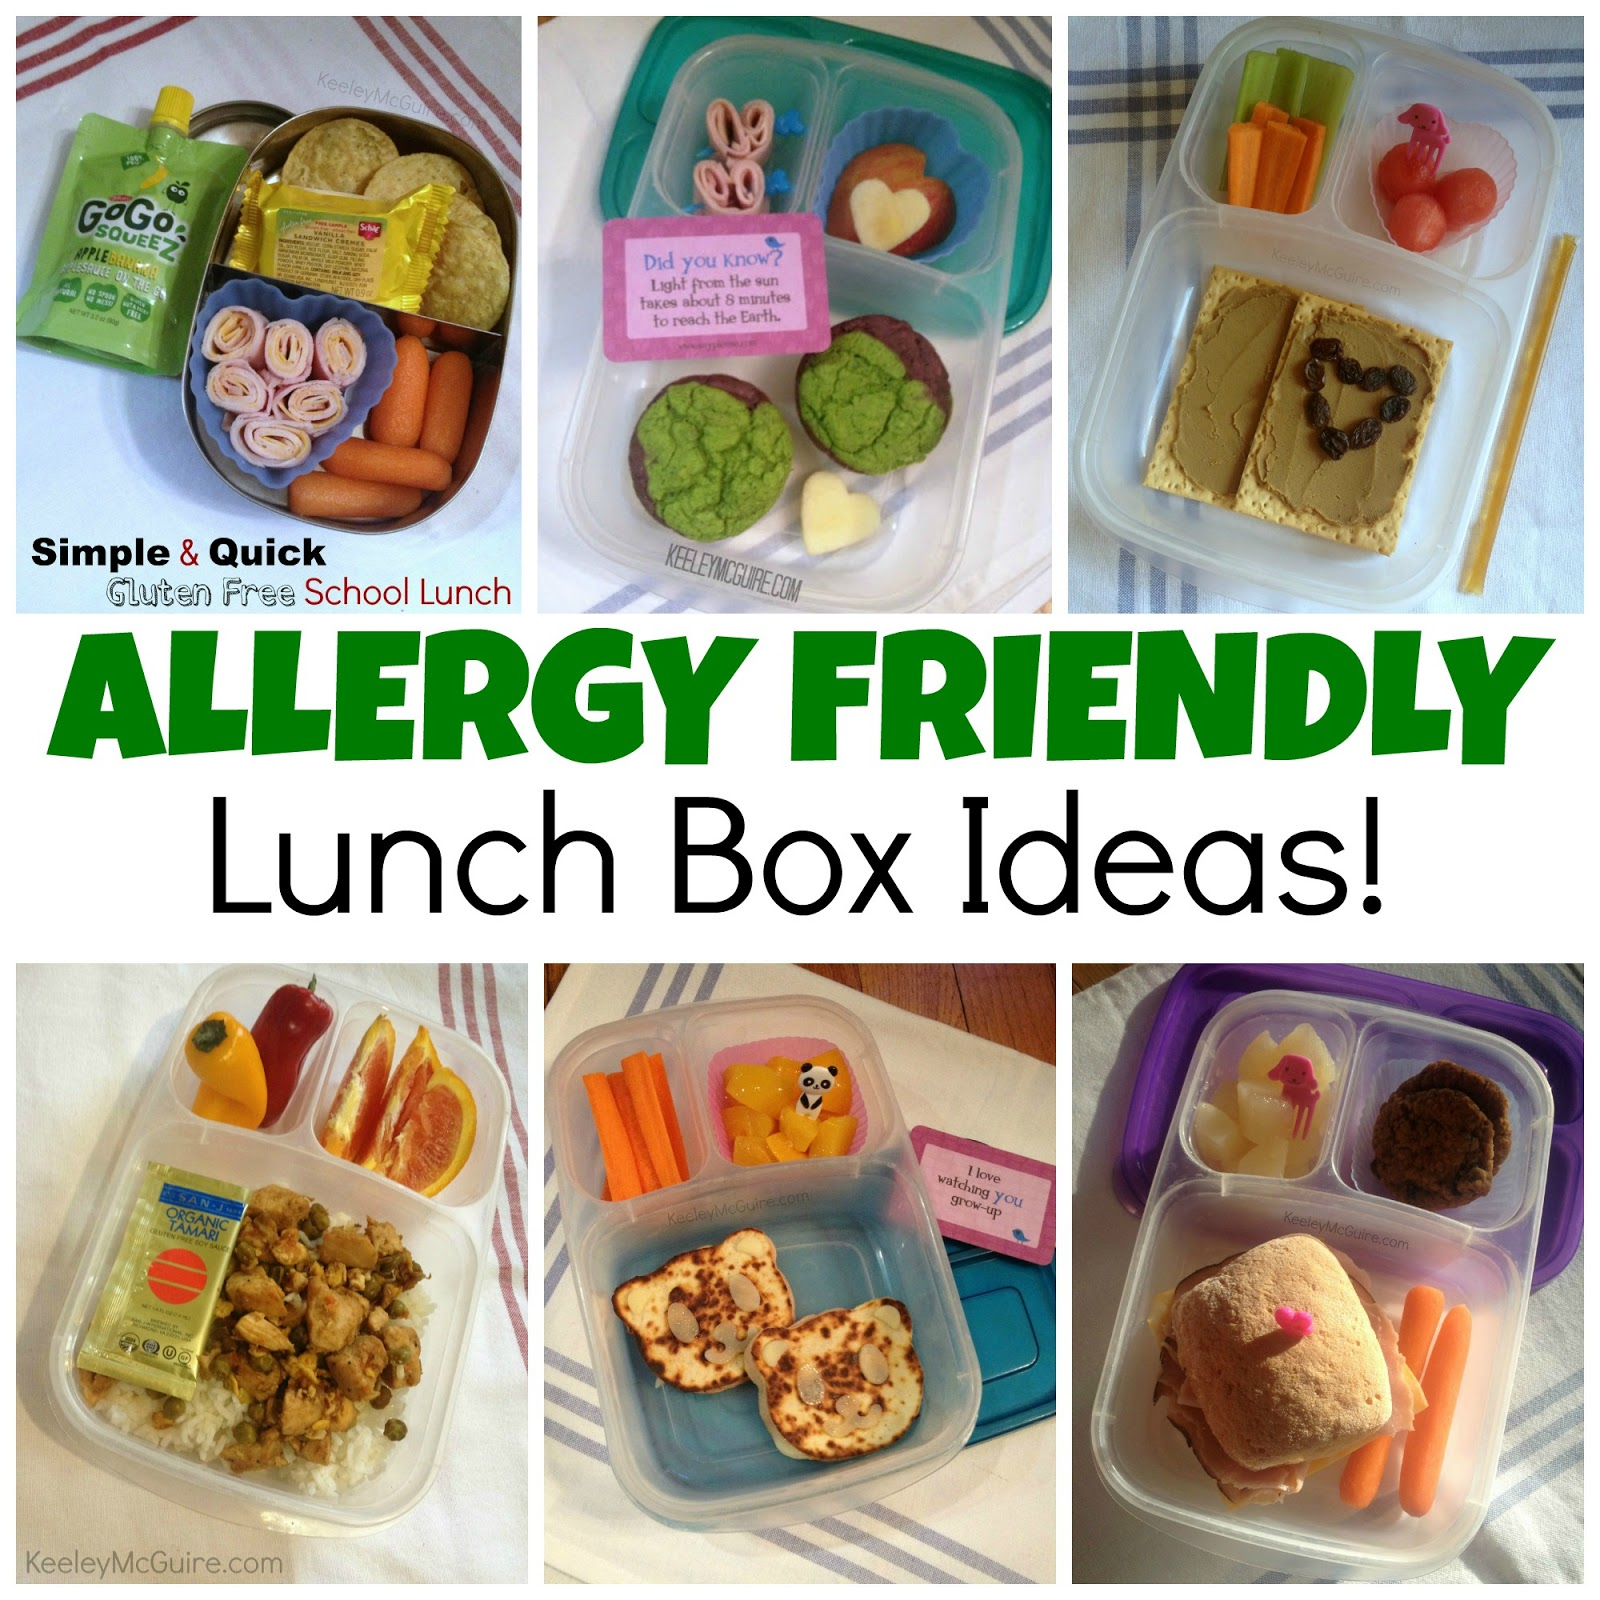 Forget lunch boxes filled with boring stuff!!! Here are two whole weeks of lunch box ideas that are super easy to make and kids will love to eat!